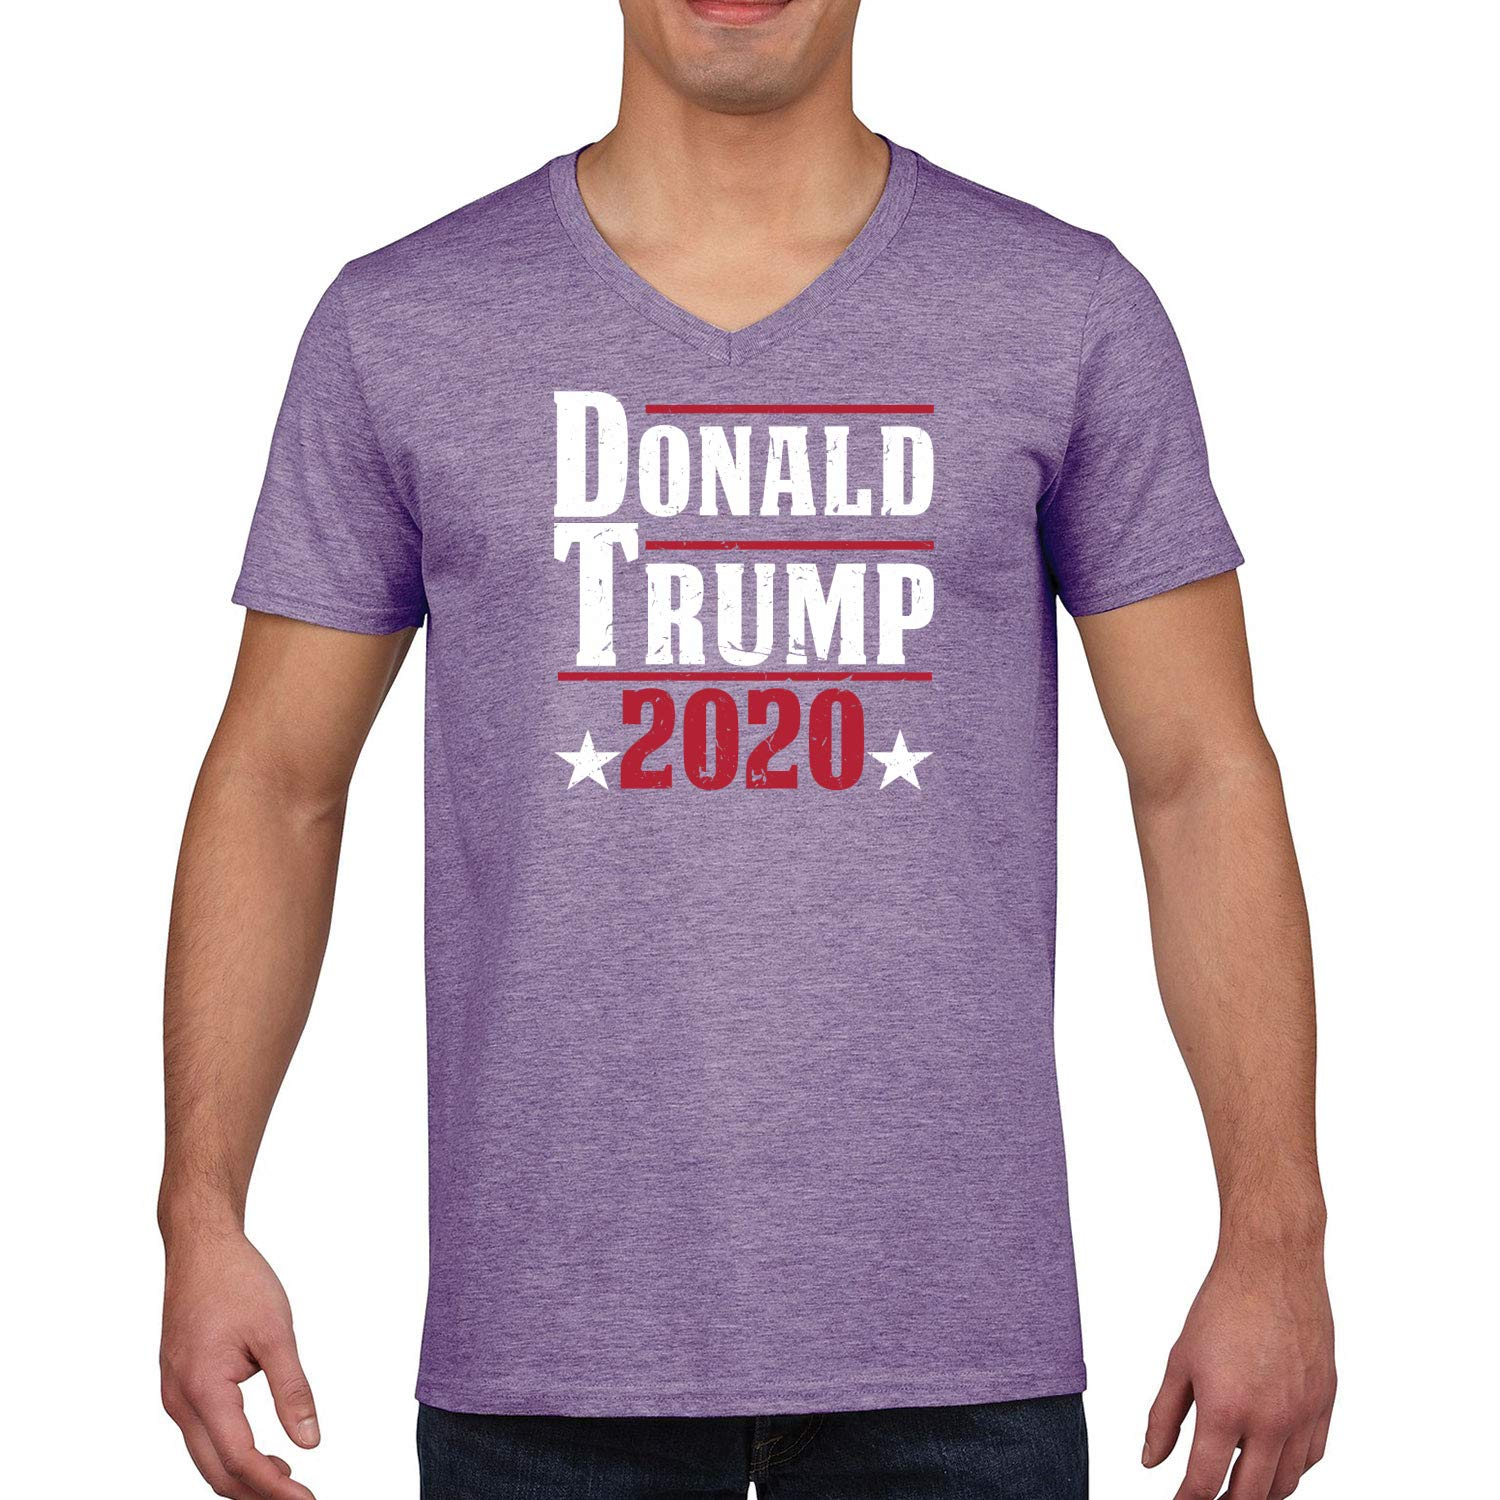 Donald Trump 2020 Us Presidential Elections 2020 S Graphic Vneck Tshirt